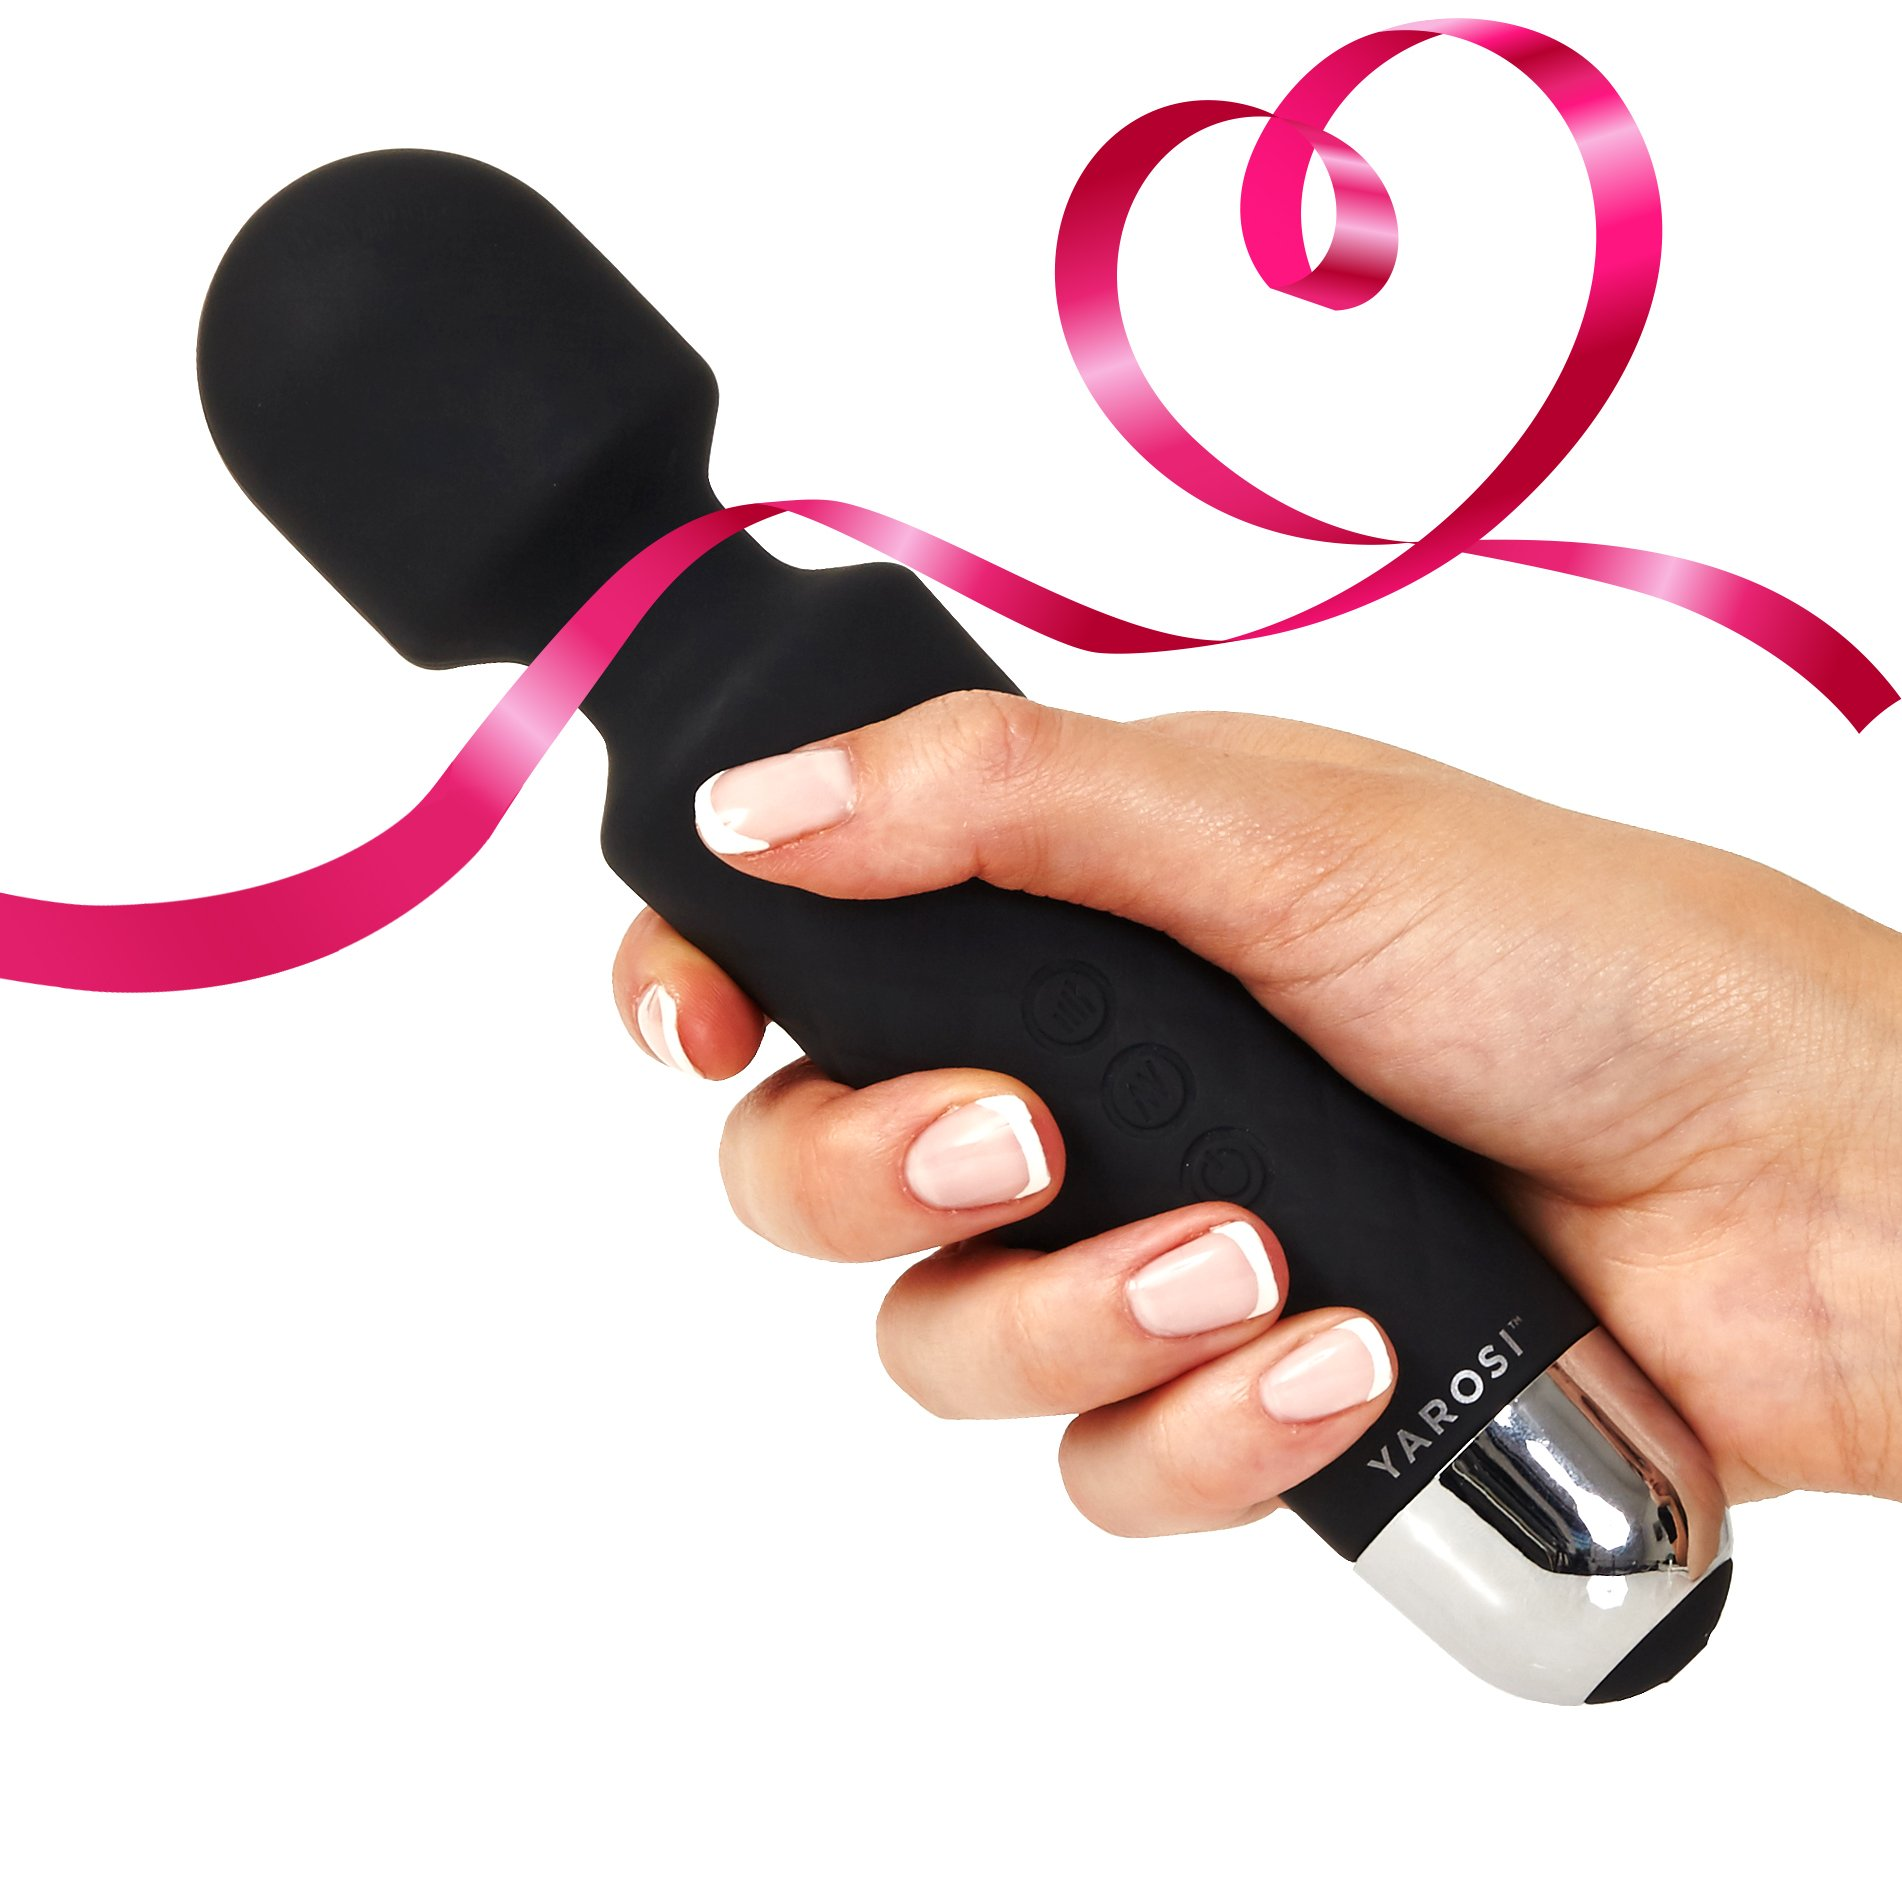 Personal Wand Massager by Yarosi - Strongest Cordless Handheld Therapeutic Vibrating Power - Best Rated for Travel Gift - Magic Stress Away - Perfect on Back, Legs, Hand Pains & Sports Recovery Srx BK